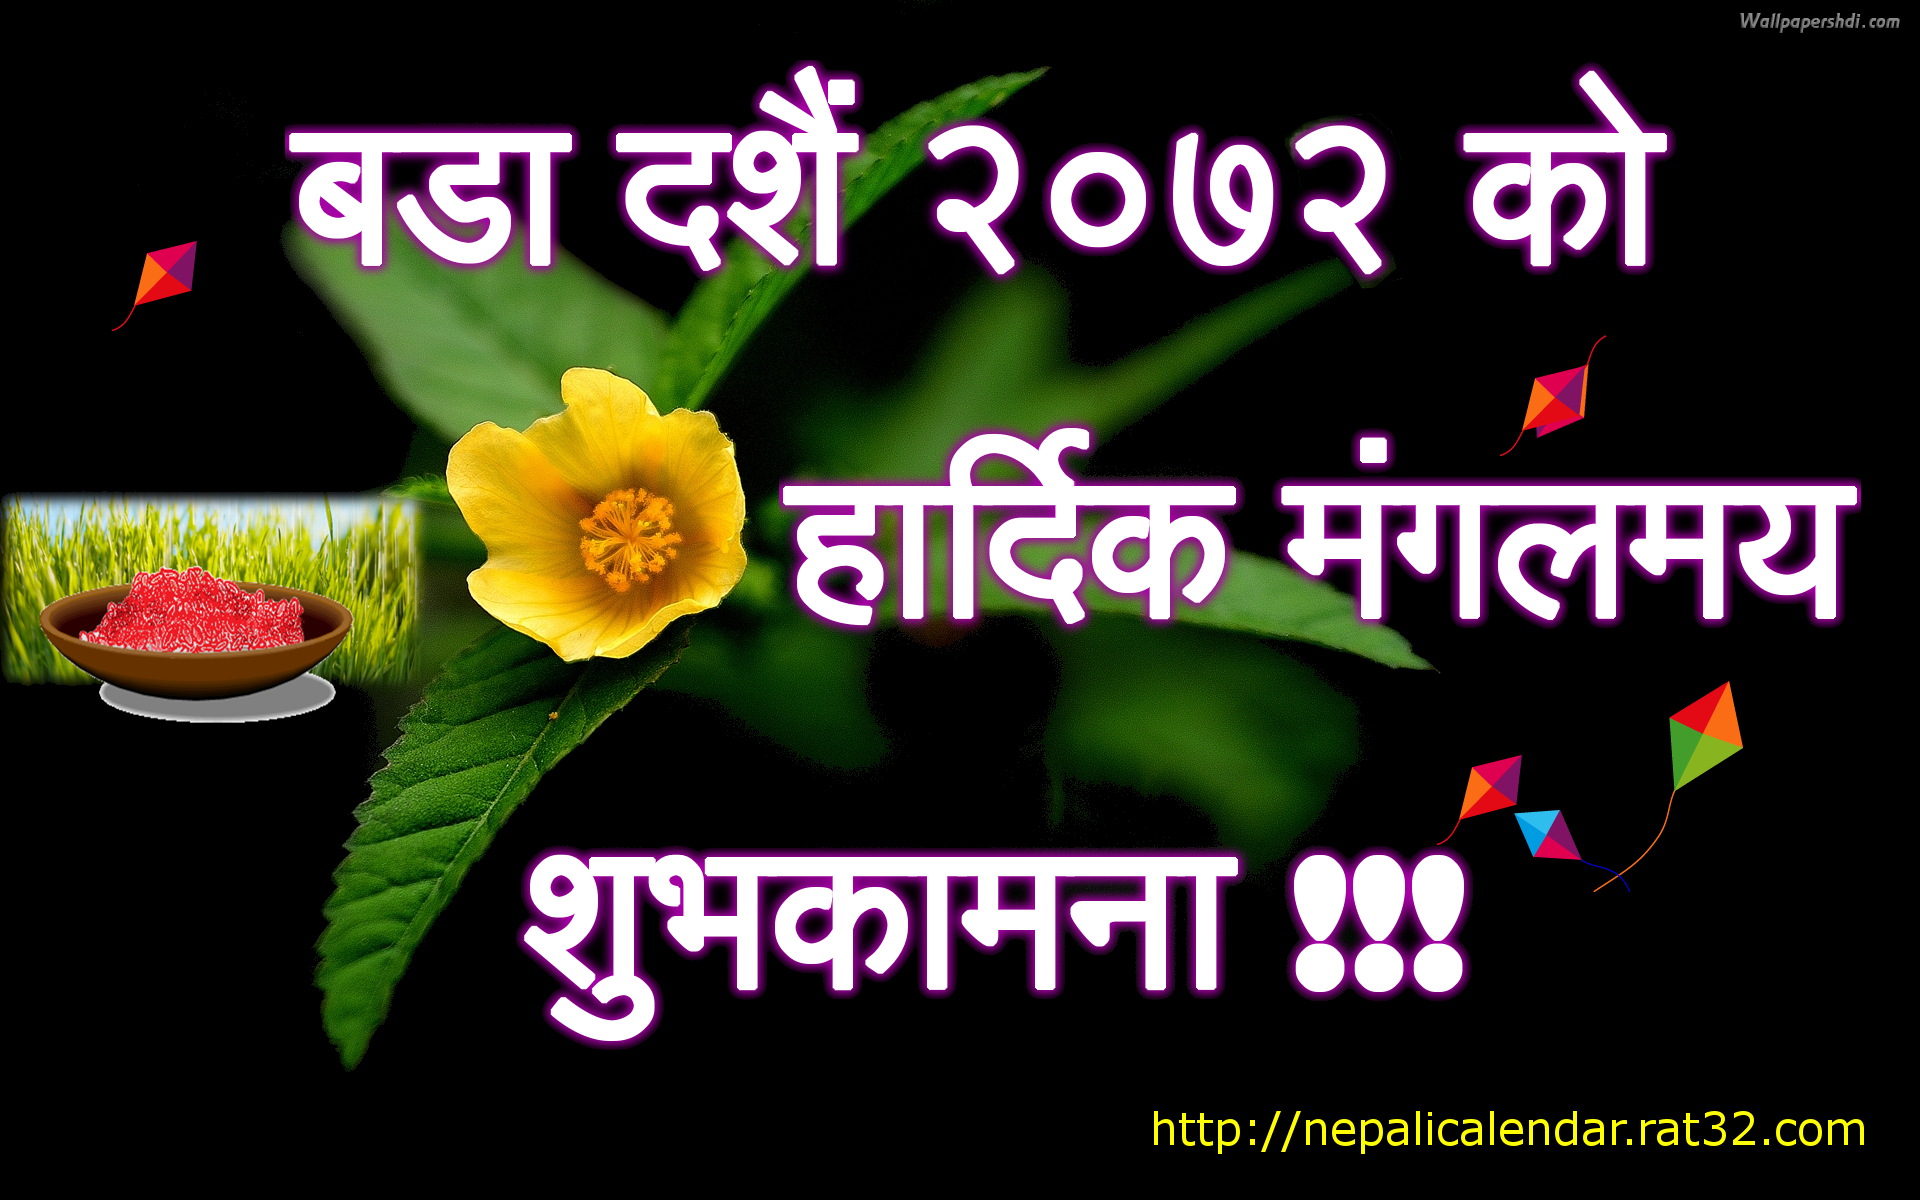 Nepali Calendar Wallpaper : Happy dashain cards ecards greetings